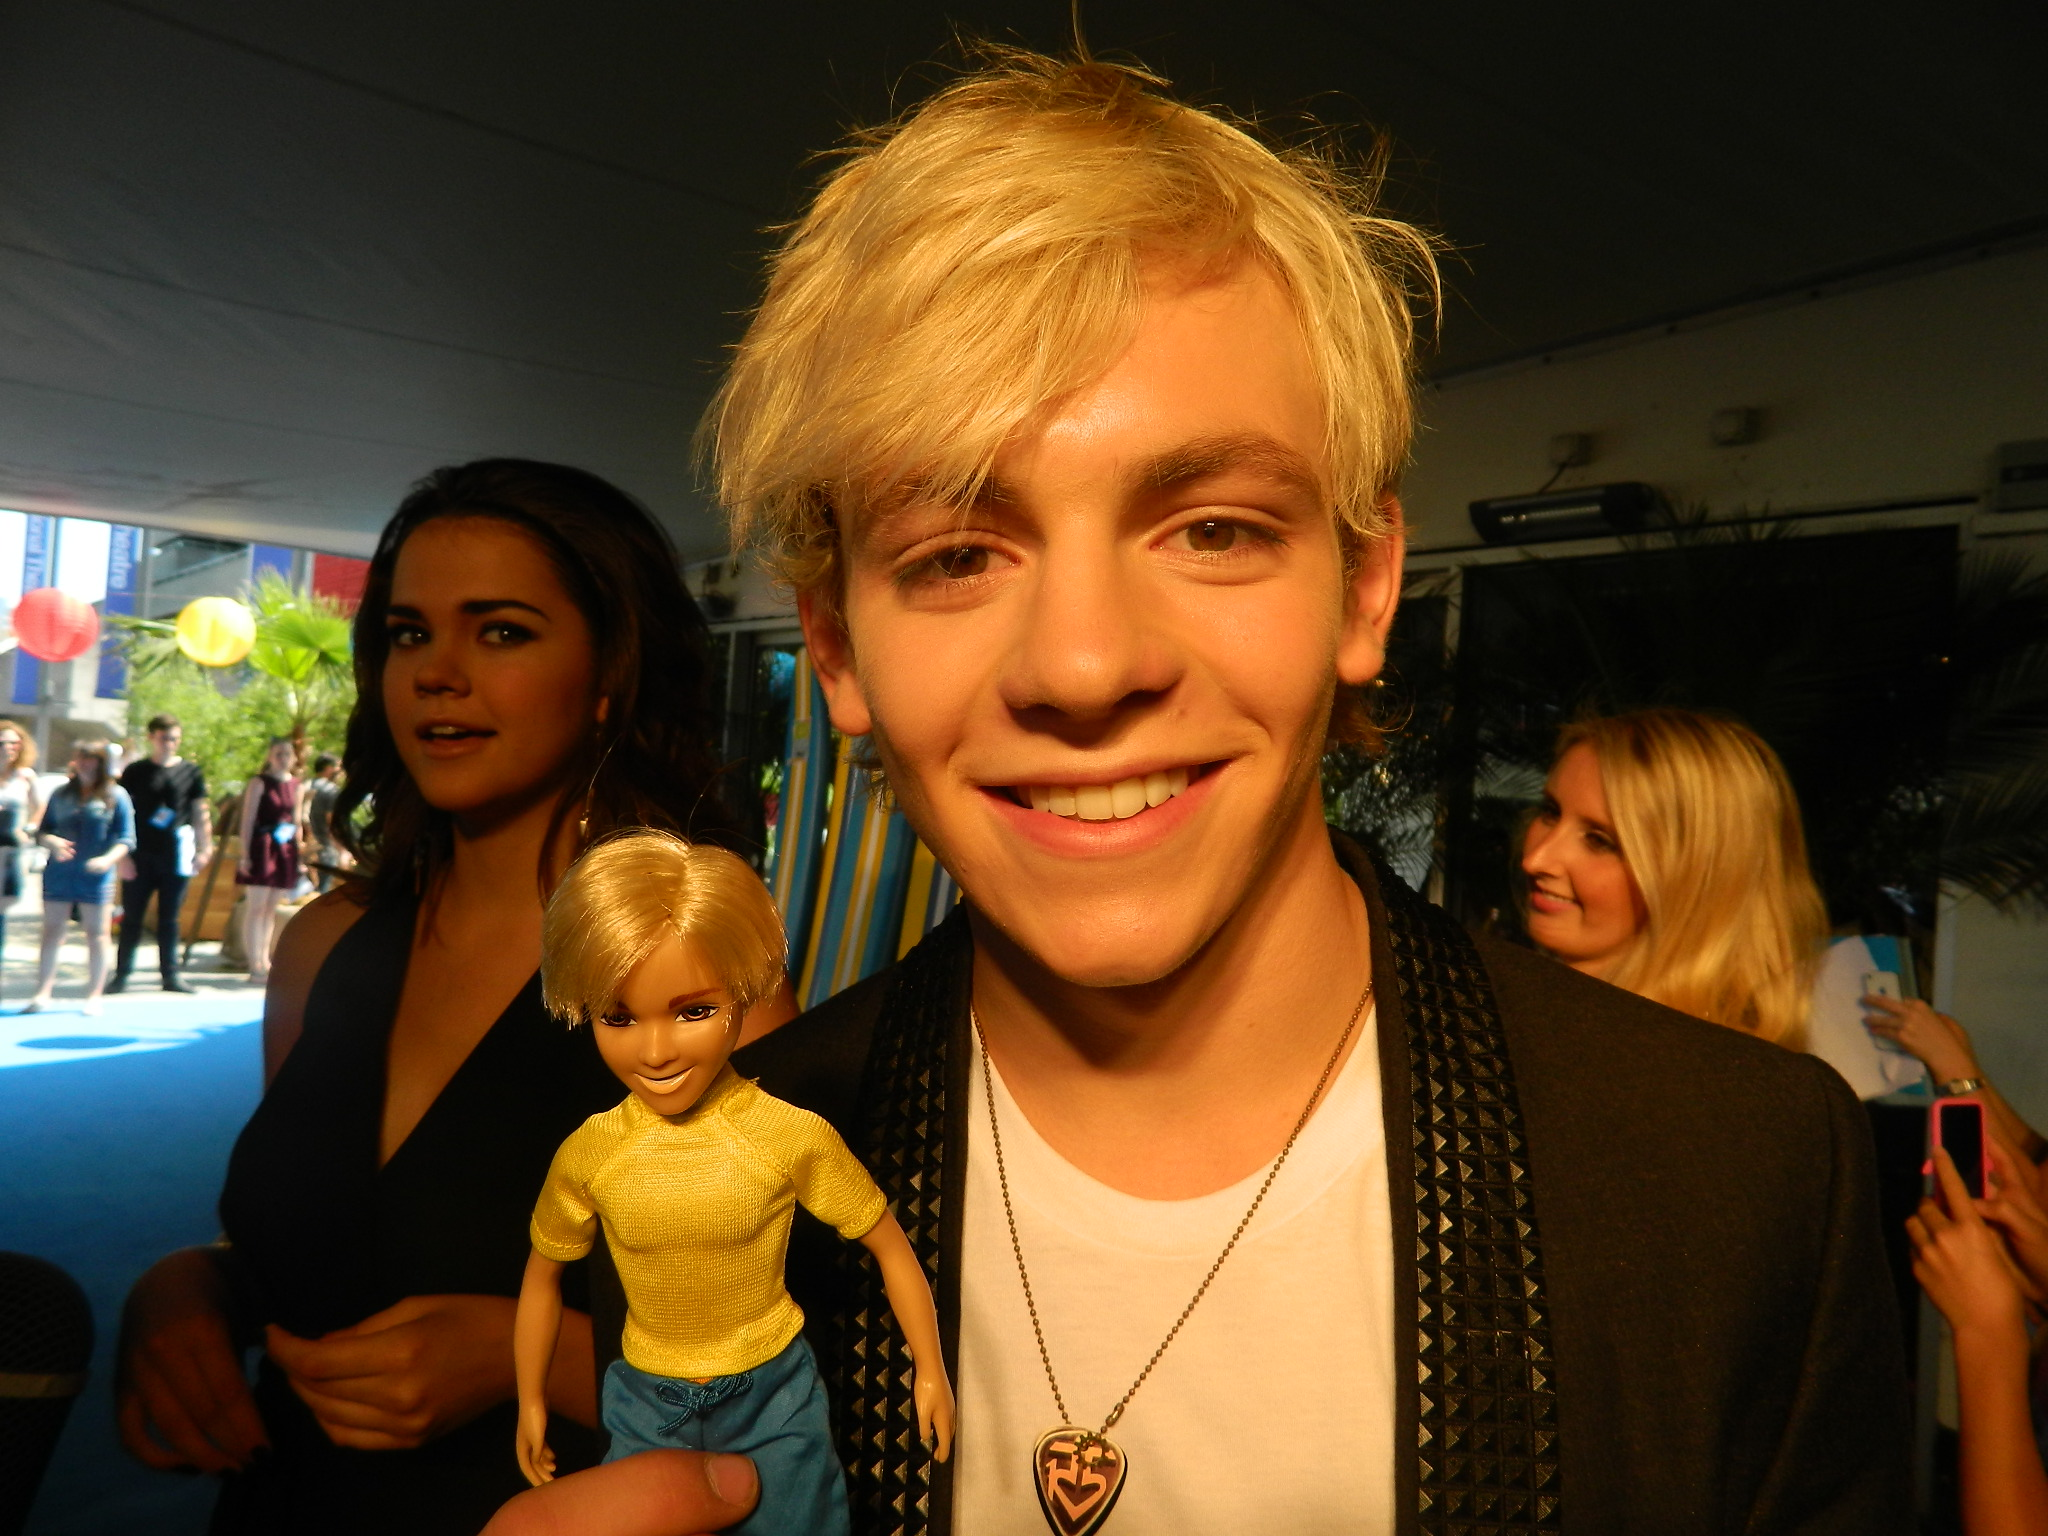 Teen Beach Movie Toys : Disney s teen beach movie toys